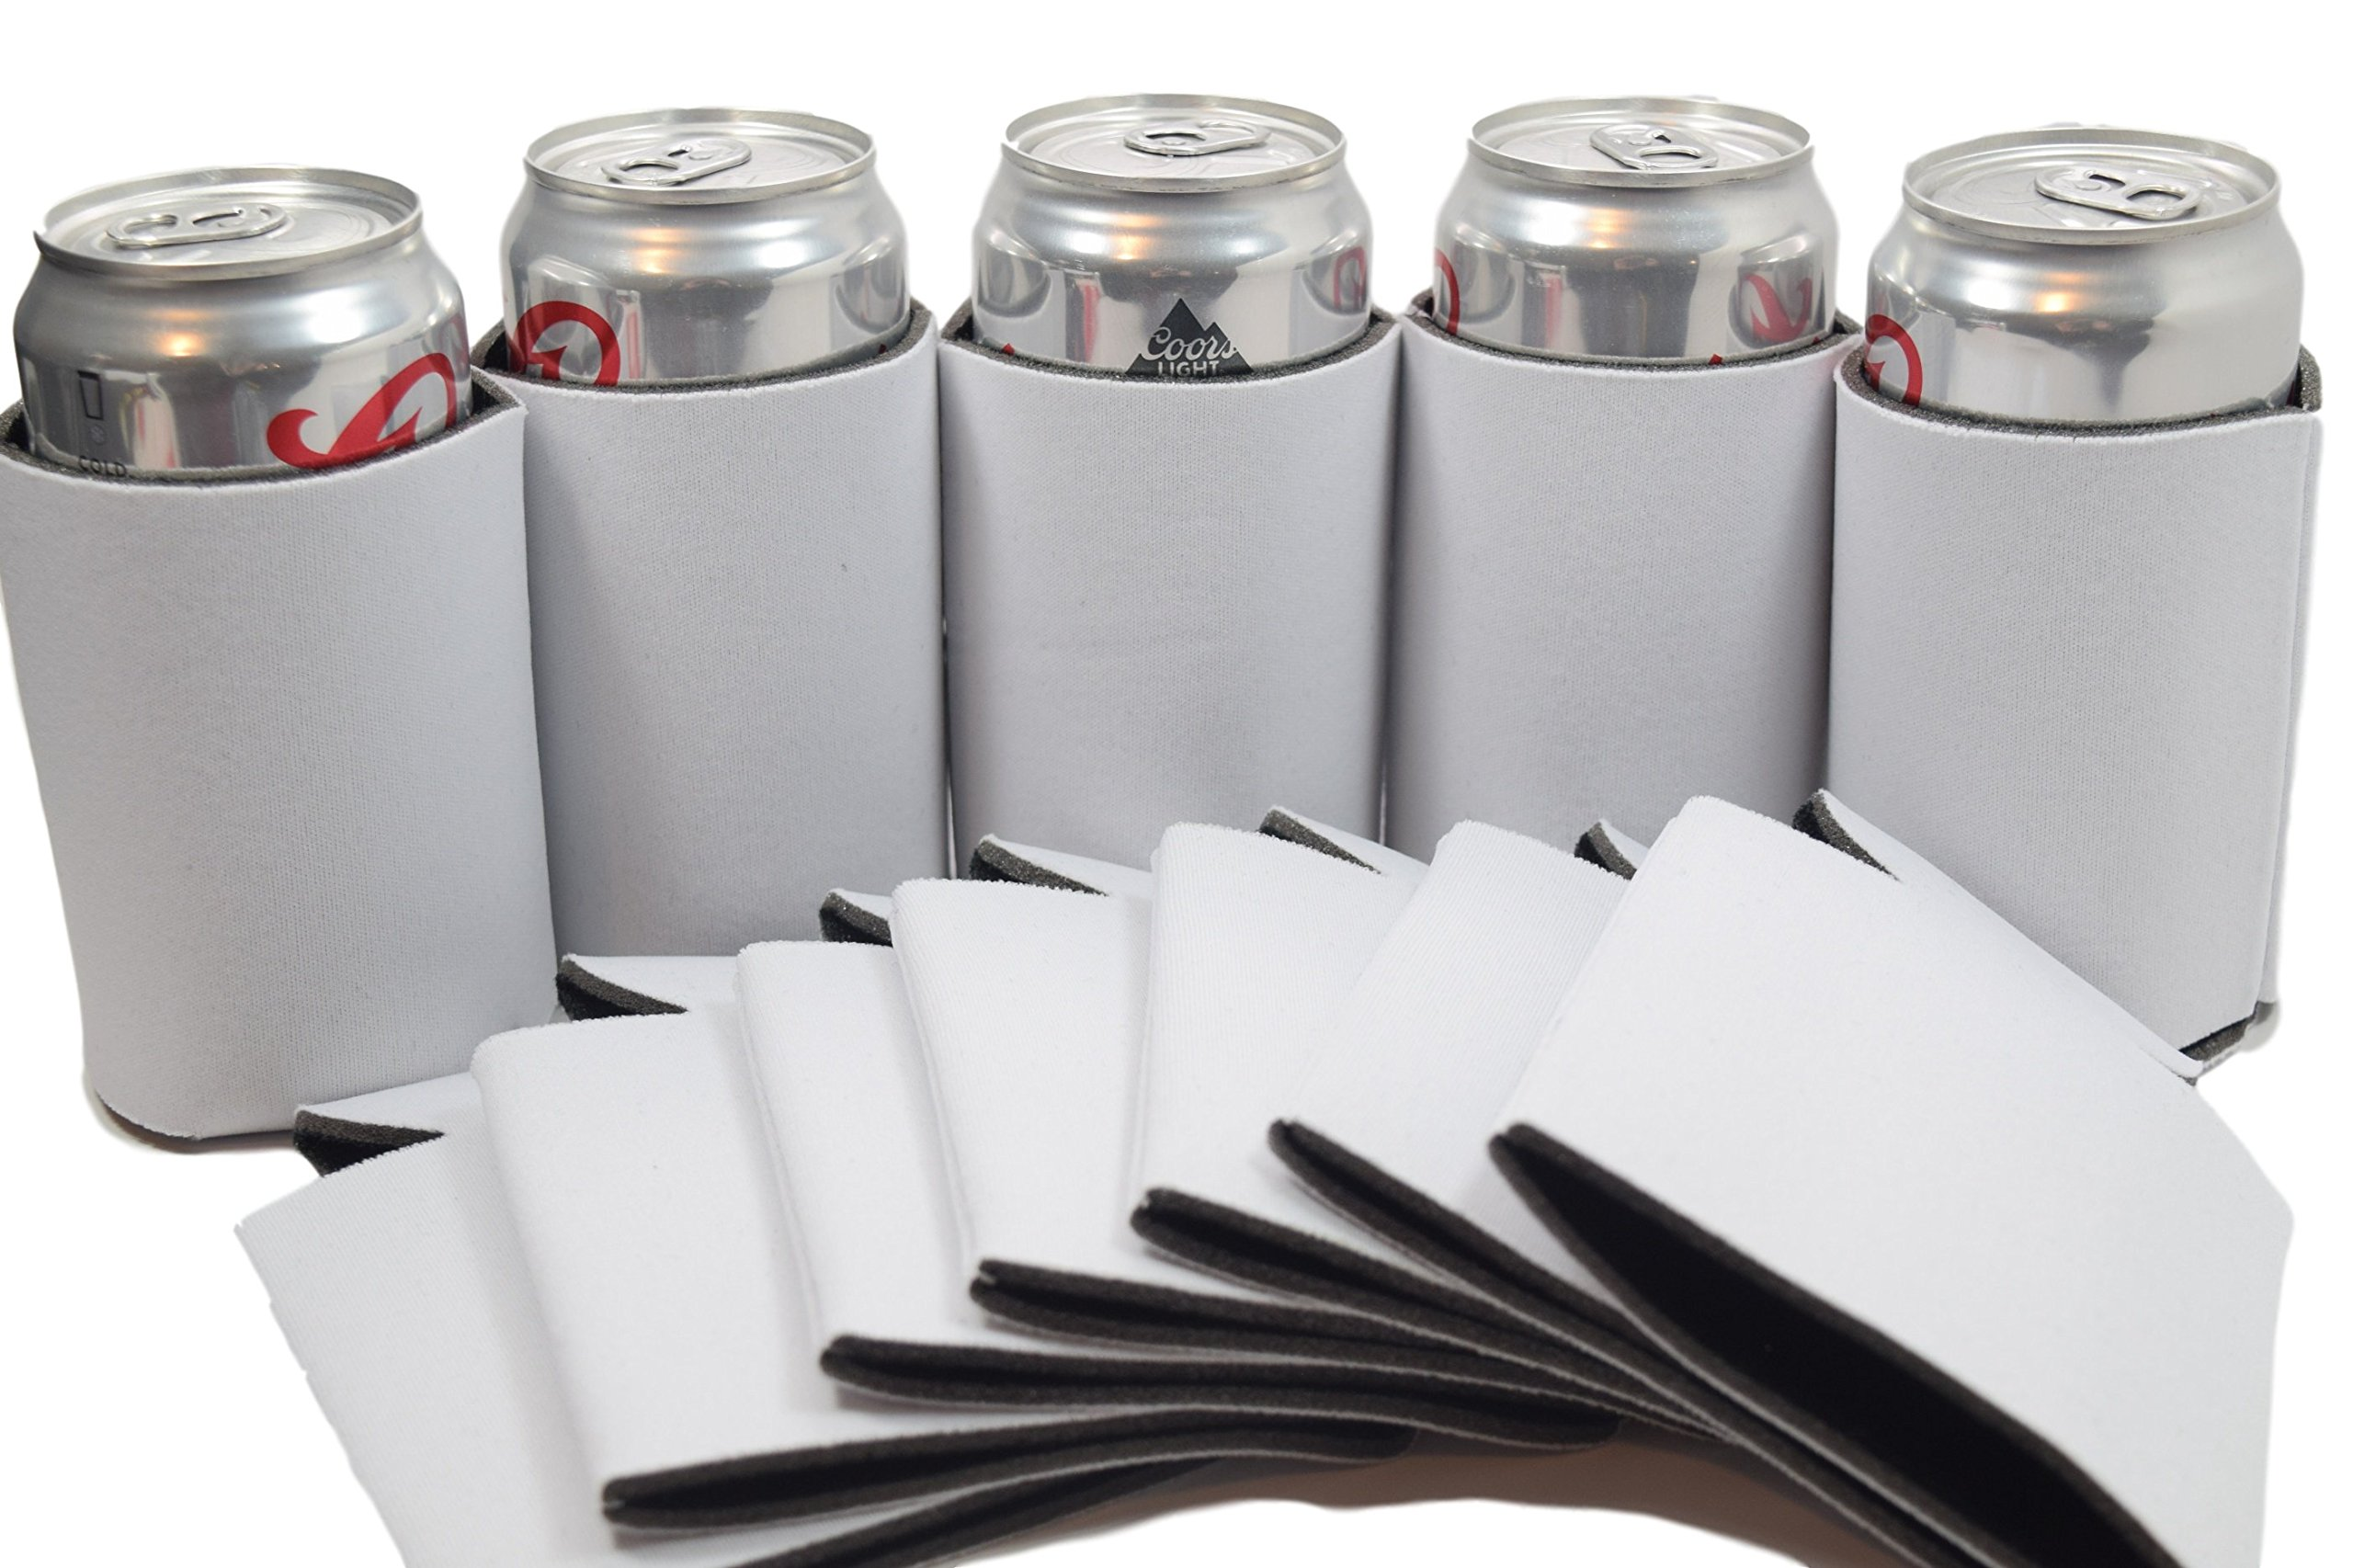 Quality&Perfection 12 White Blank Can Cooler Sleeve,Coozie For Can,Beer,Soft Drink,Economy Bulk,Collapsible Insulator,Good 4 Wedding,Parties(12, White)